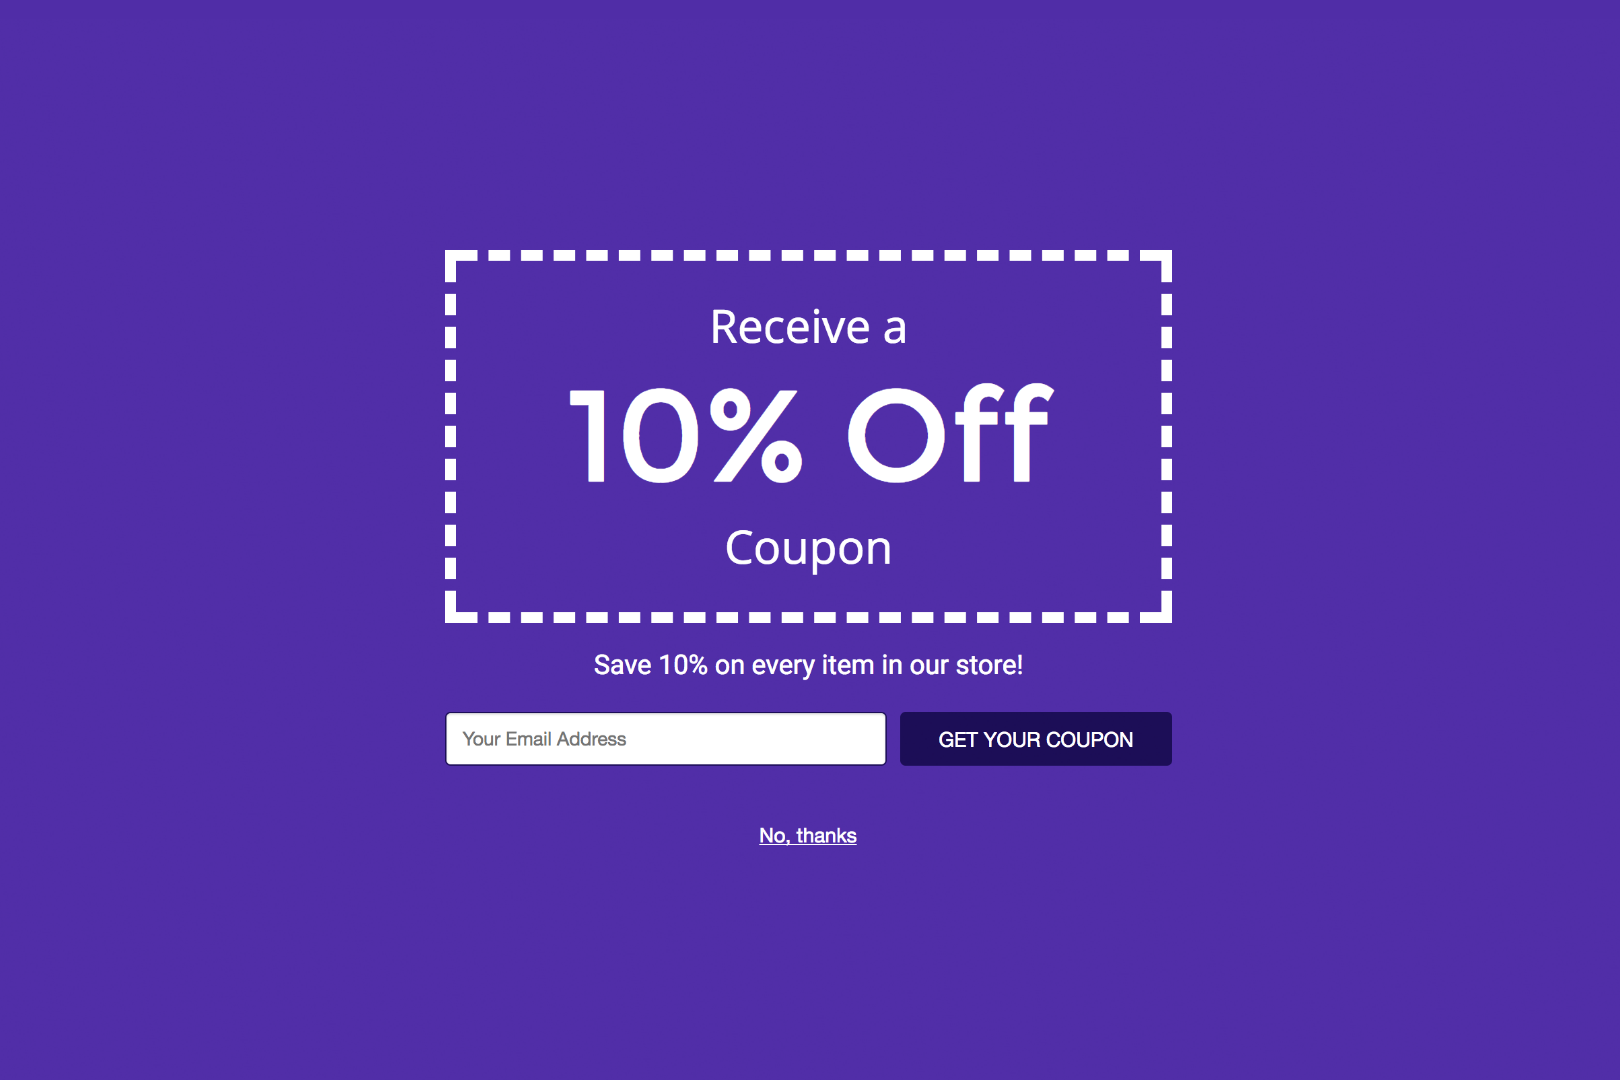 Generate leads with smart popups